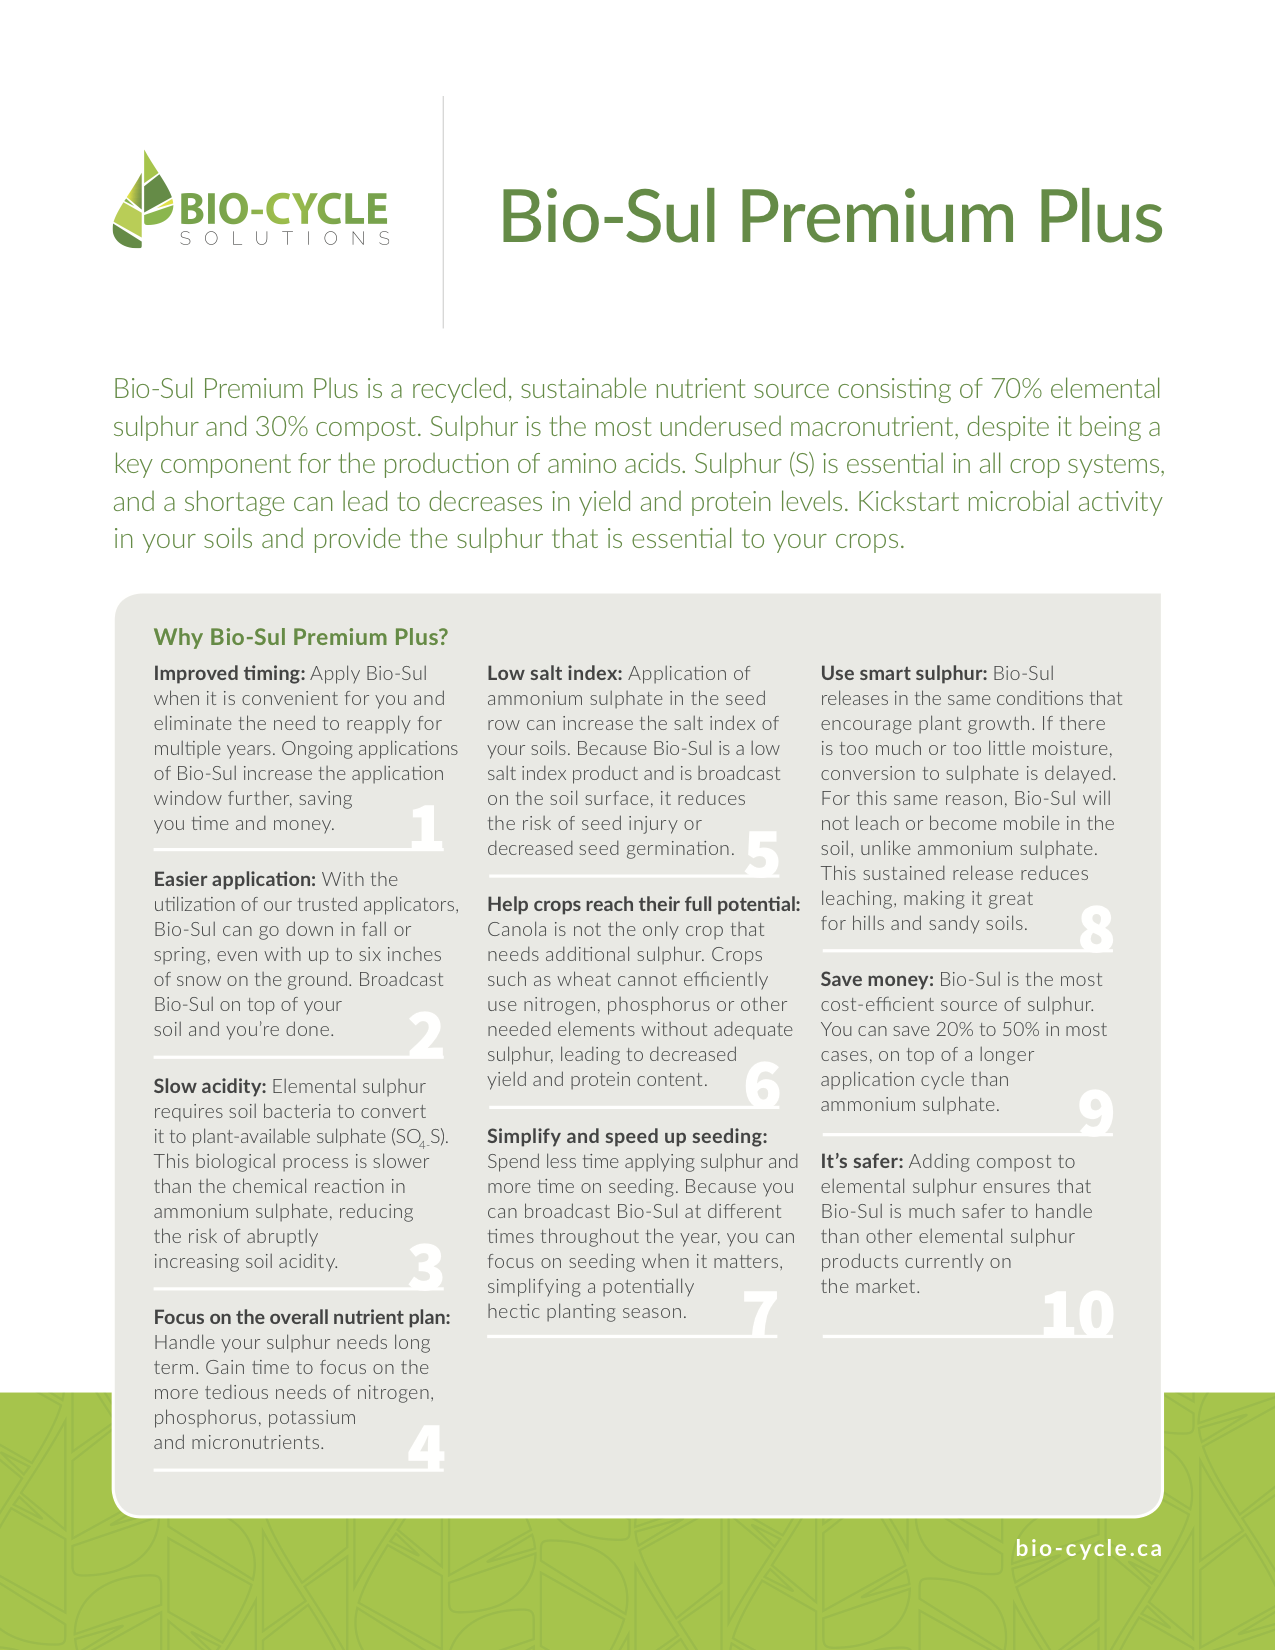 10-Reasons-to-use-Bio-Sul-Premium-Plus